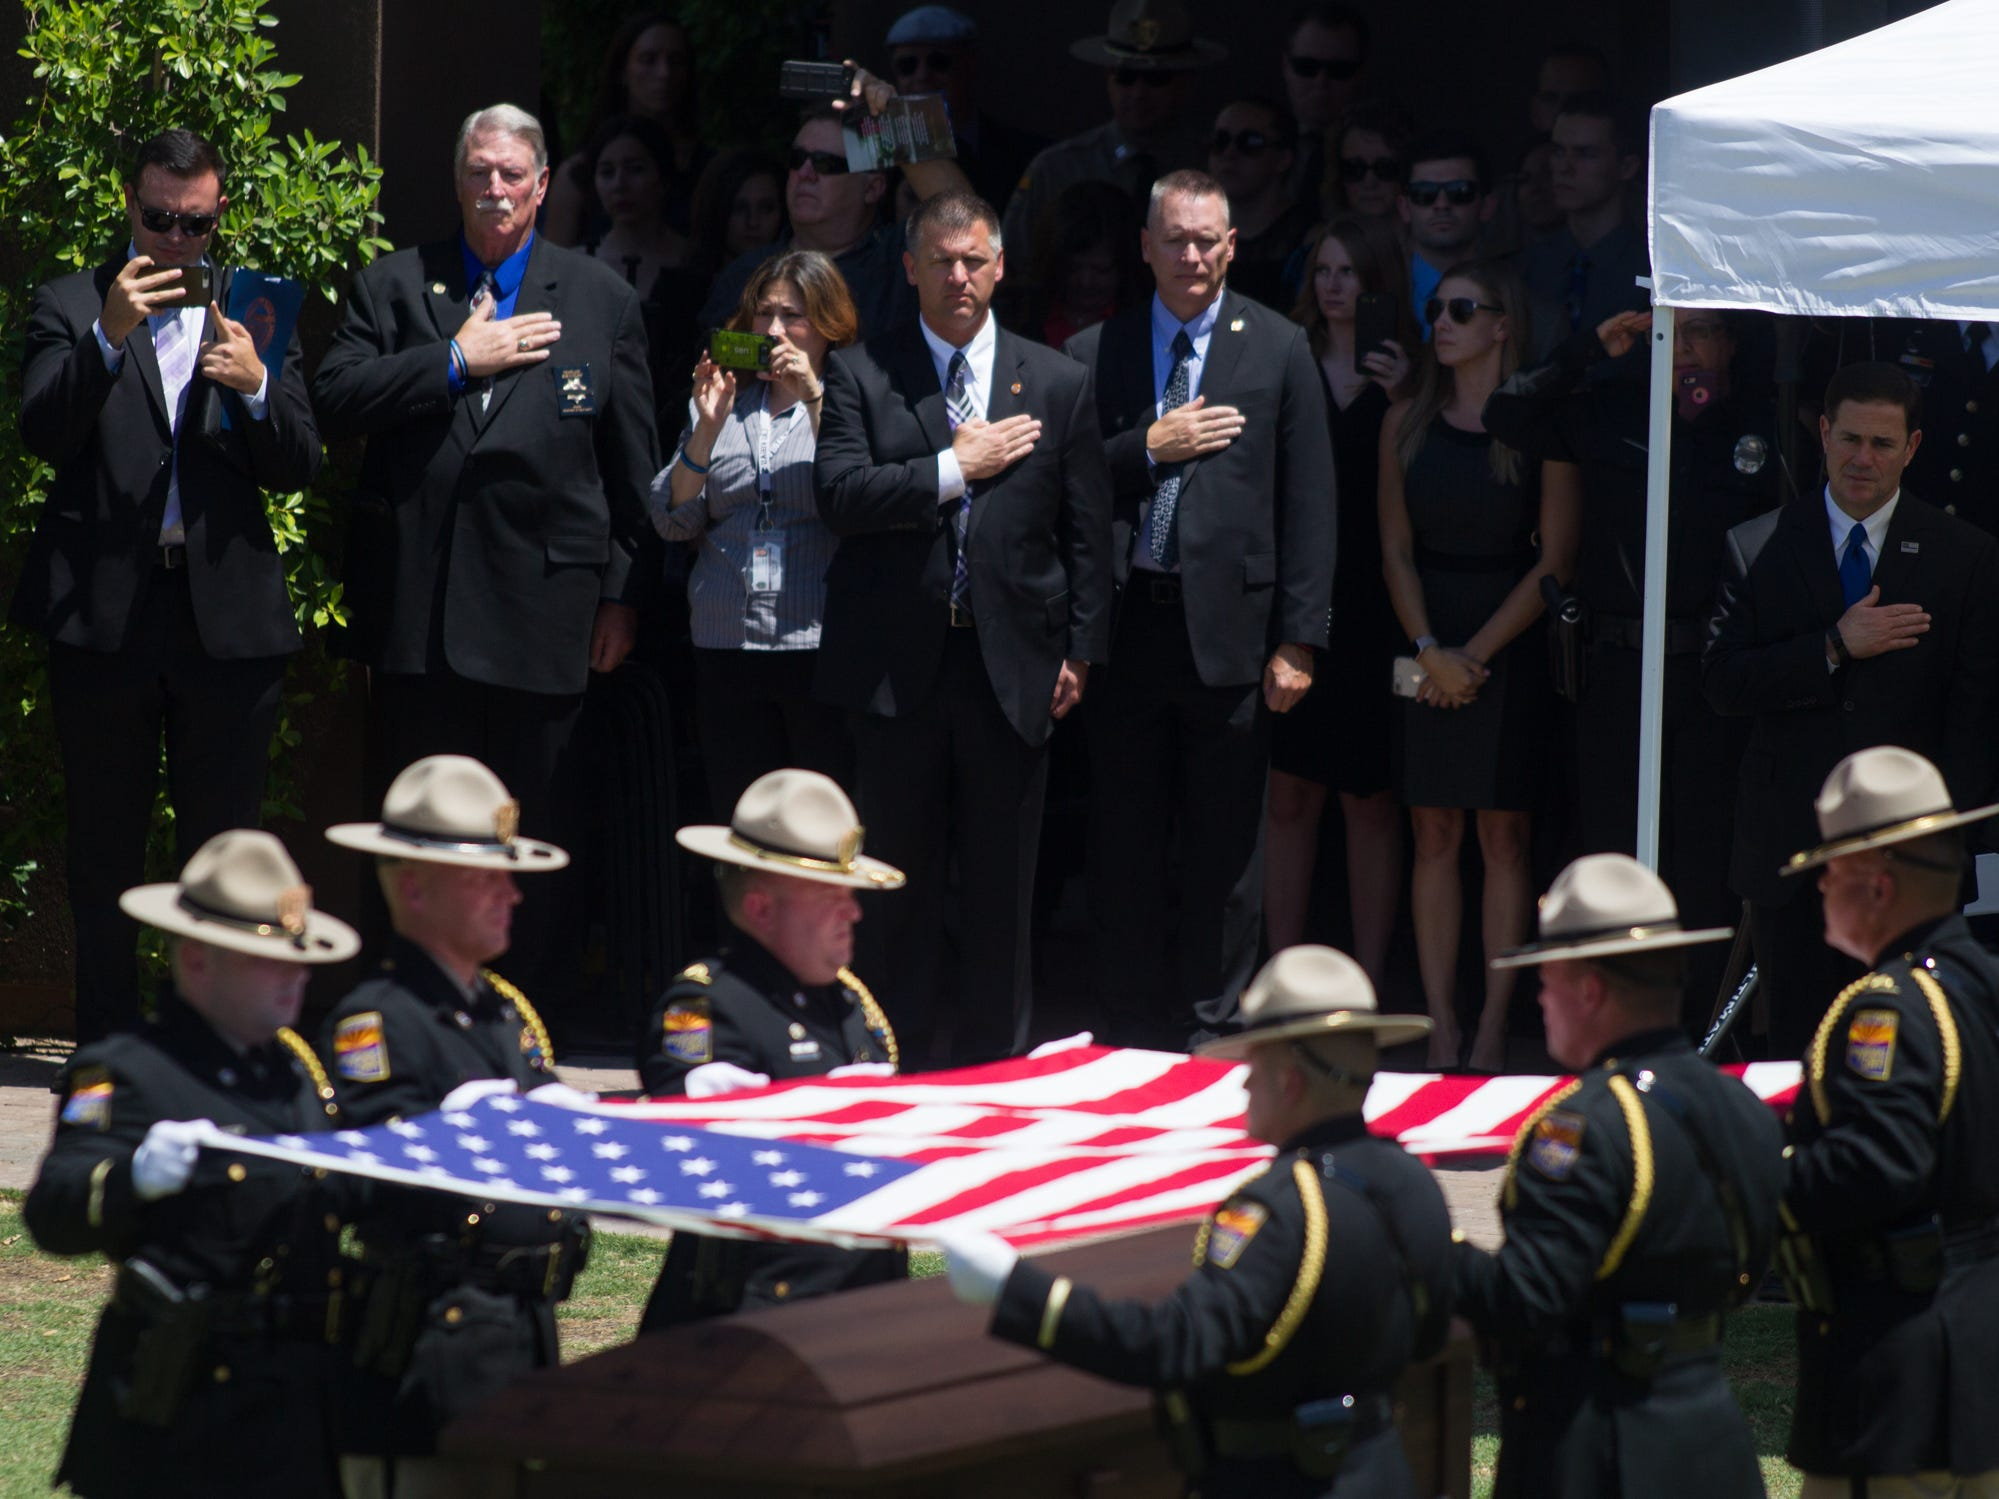 Gov. Doug Ducey (right) watches the folding of the flag on Aug. 3, 2018, during the funeral for fallen DPS Trooper Tyler Edenhofer at Christ's Church of the Valley in Peoria.